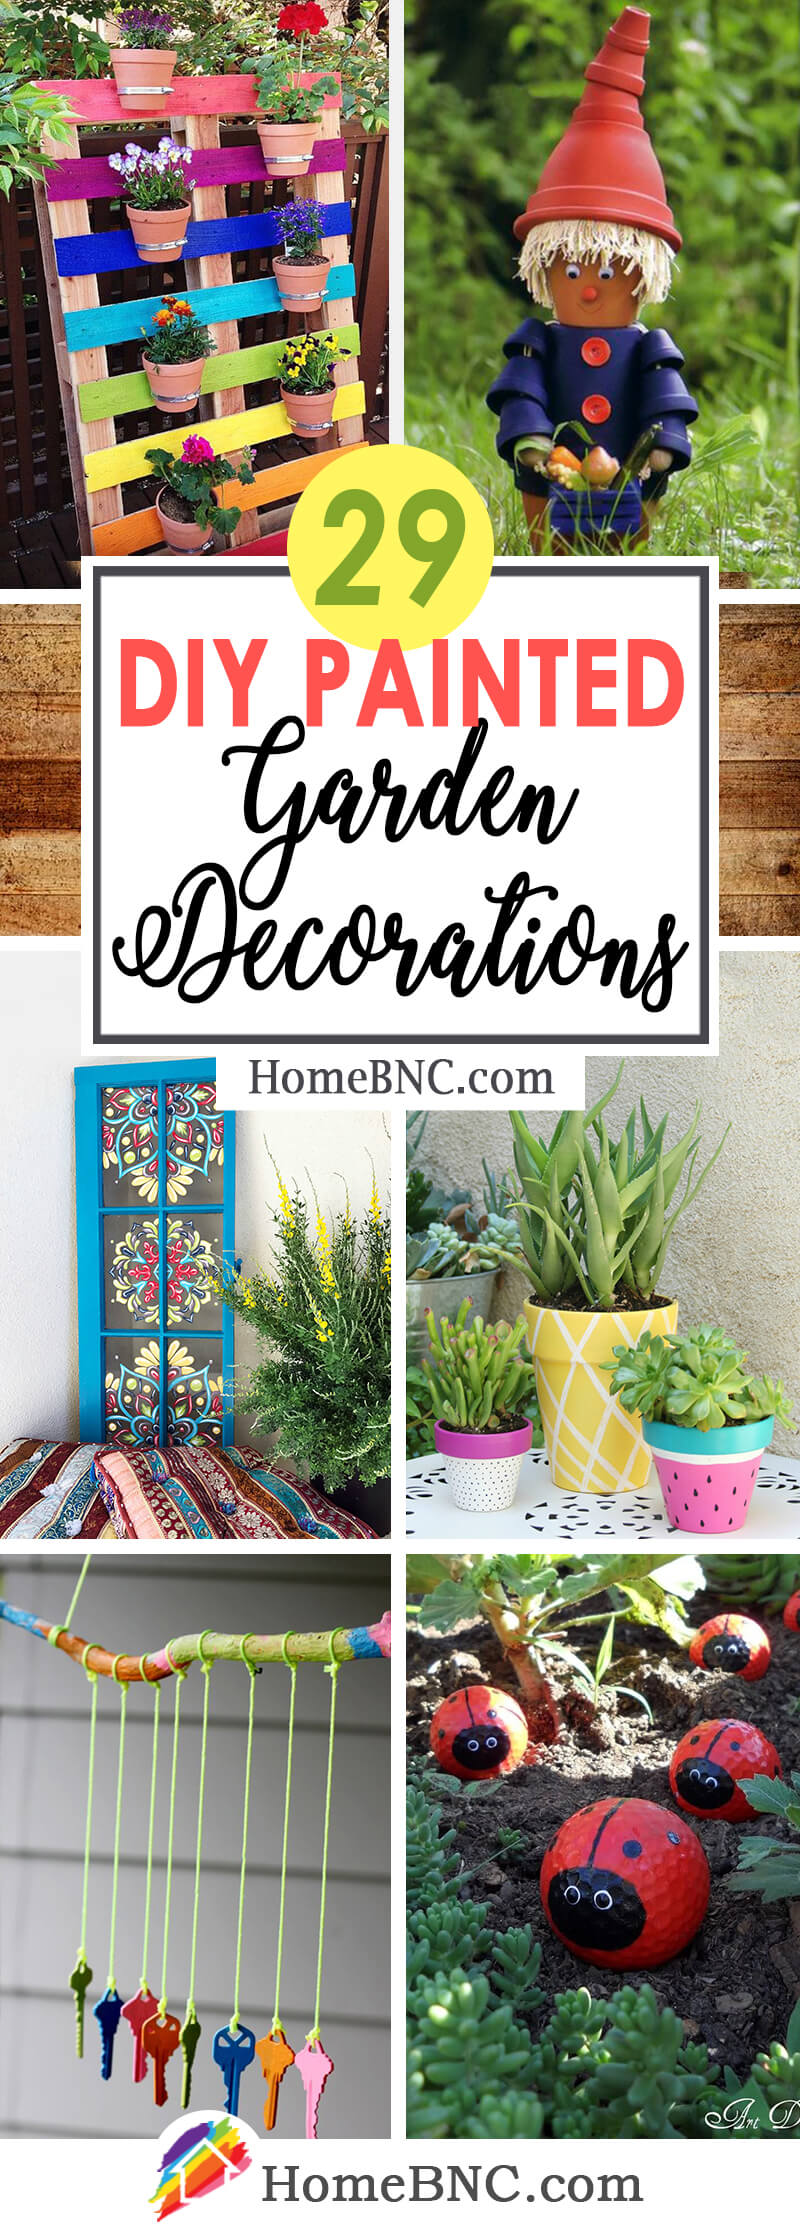 DIY Painted Garden Decor Ideas